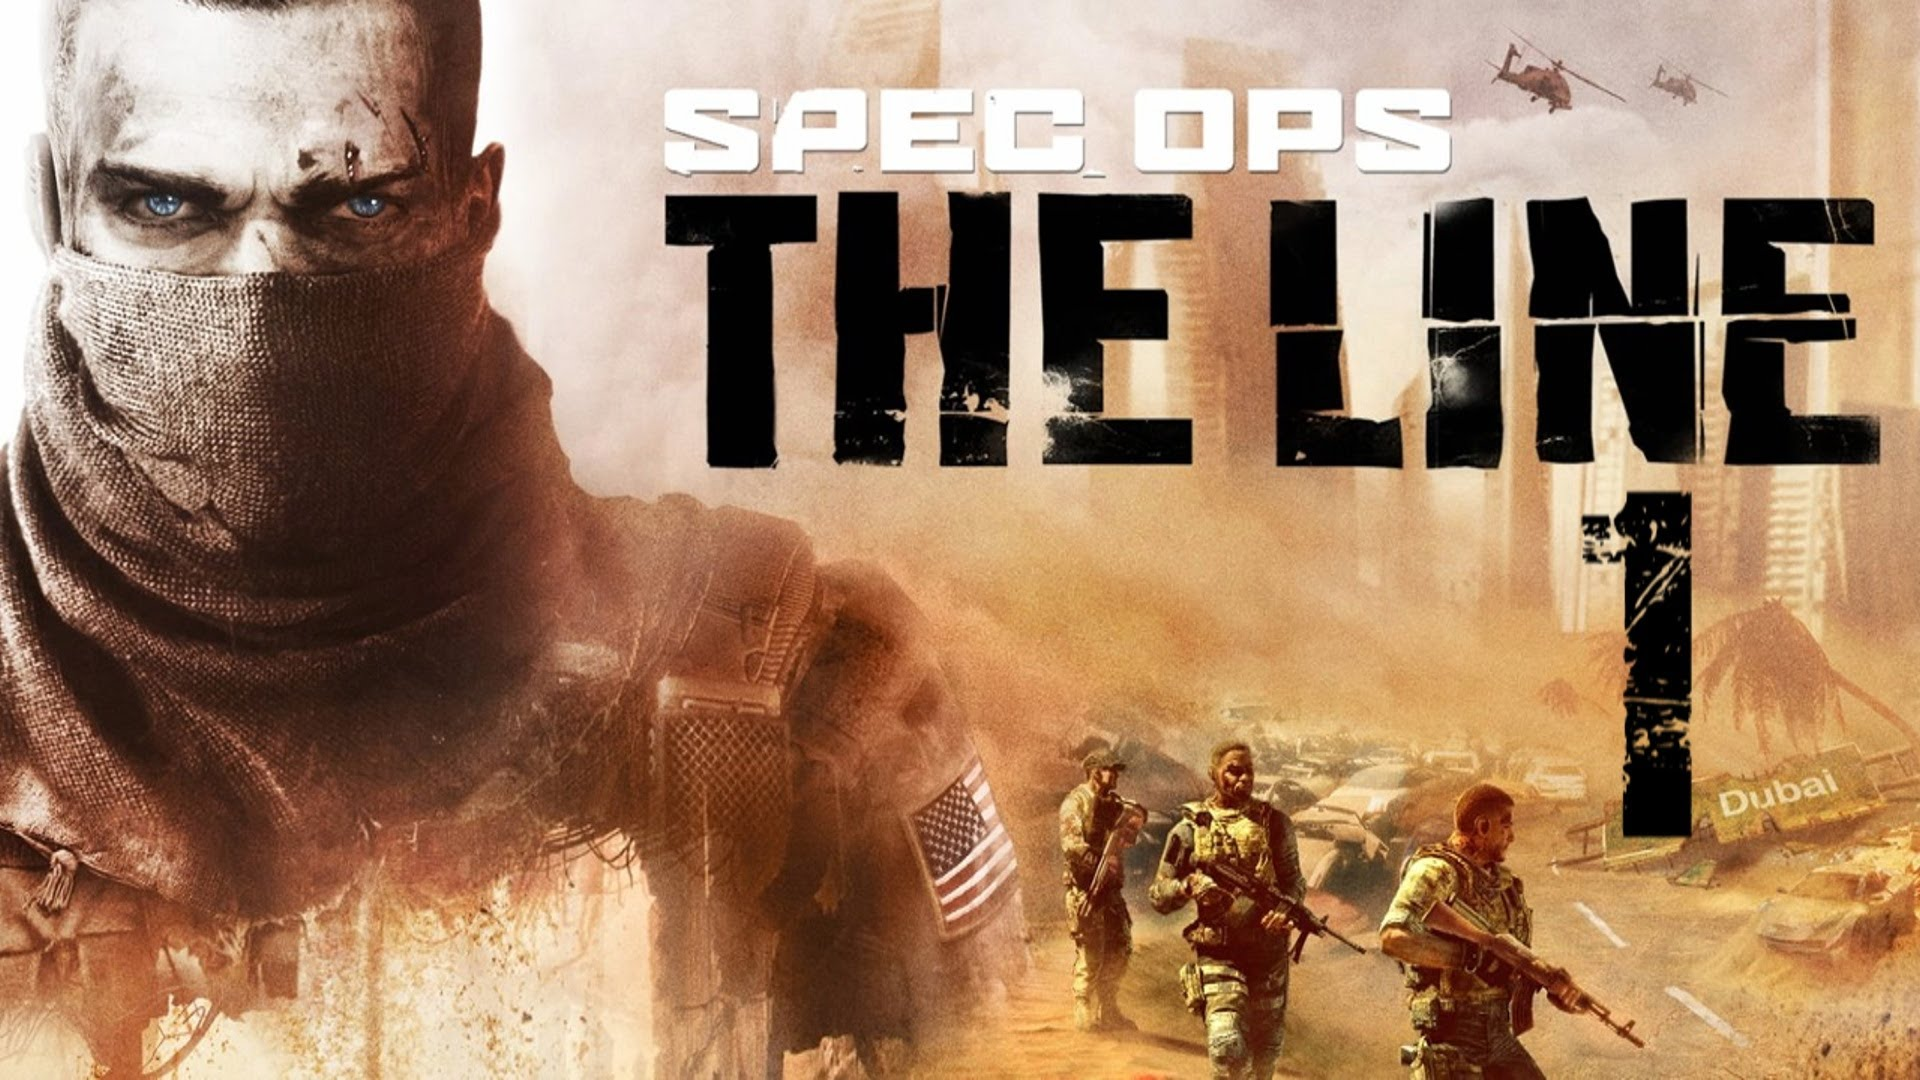 Spec Ops The Line HD Wallpaper 12   1920 X 1080 stmednet 1920x1080